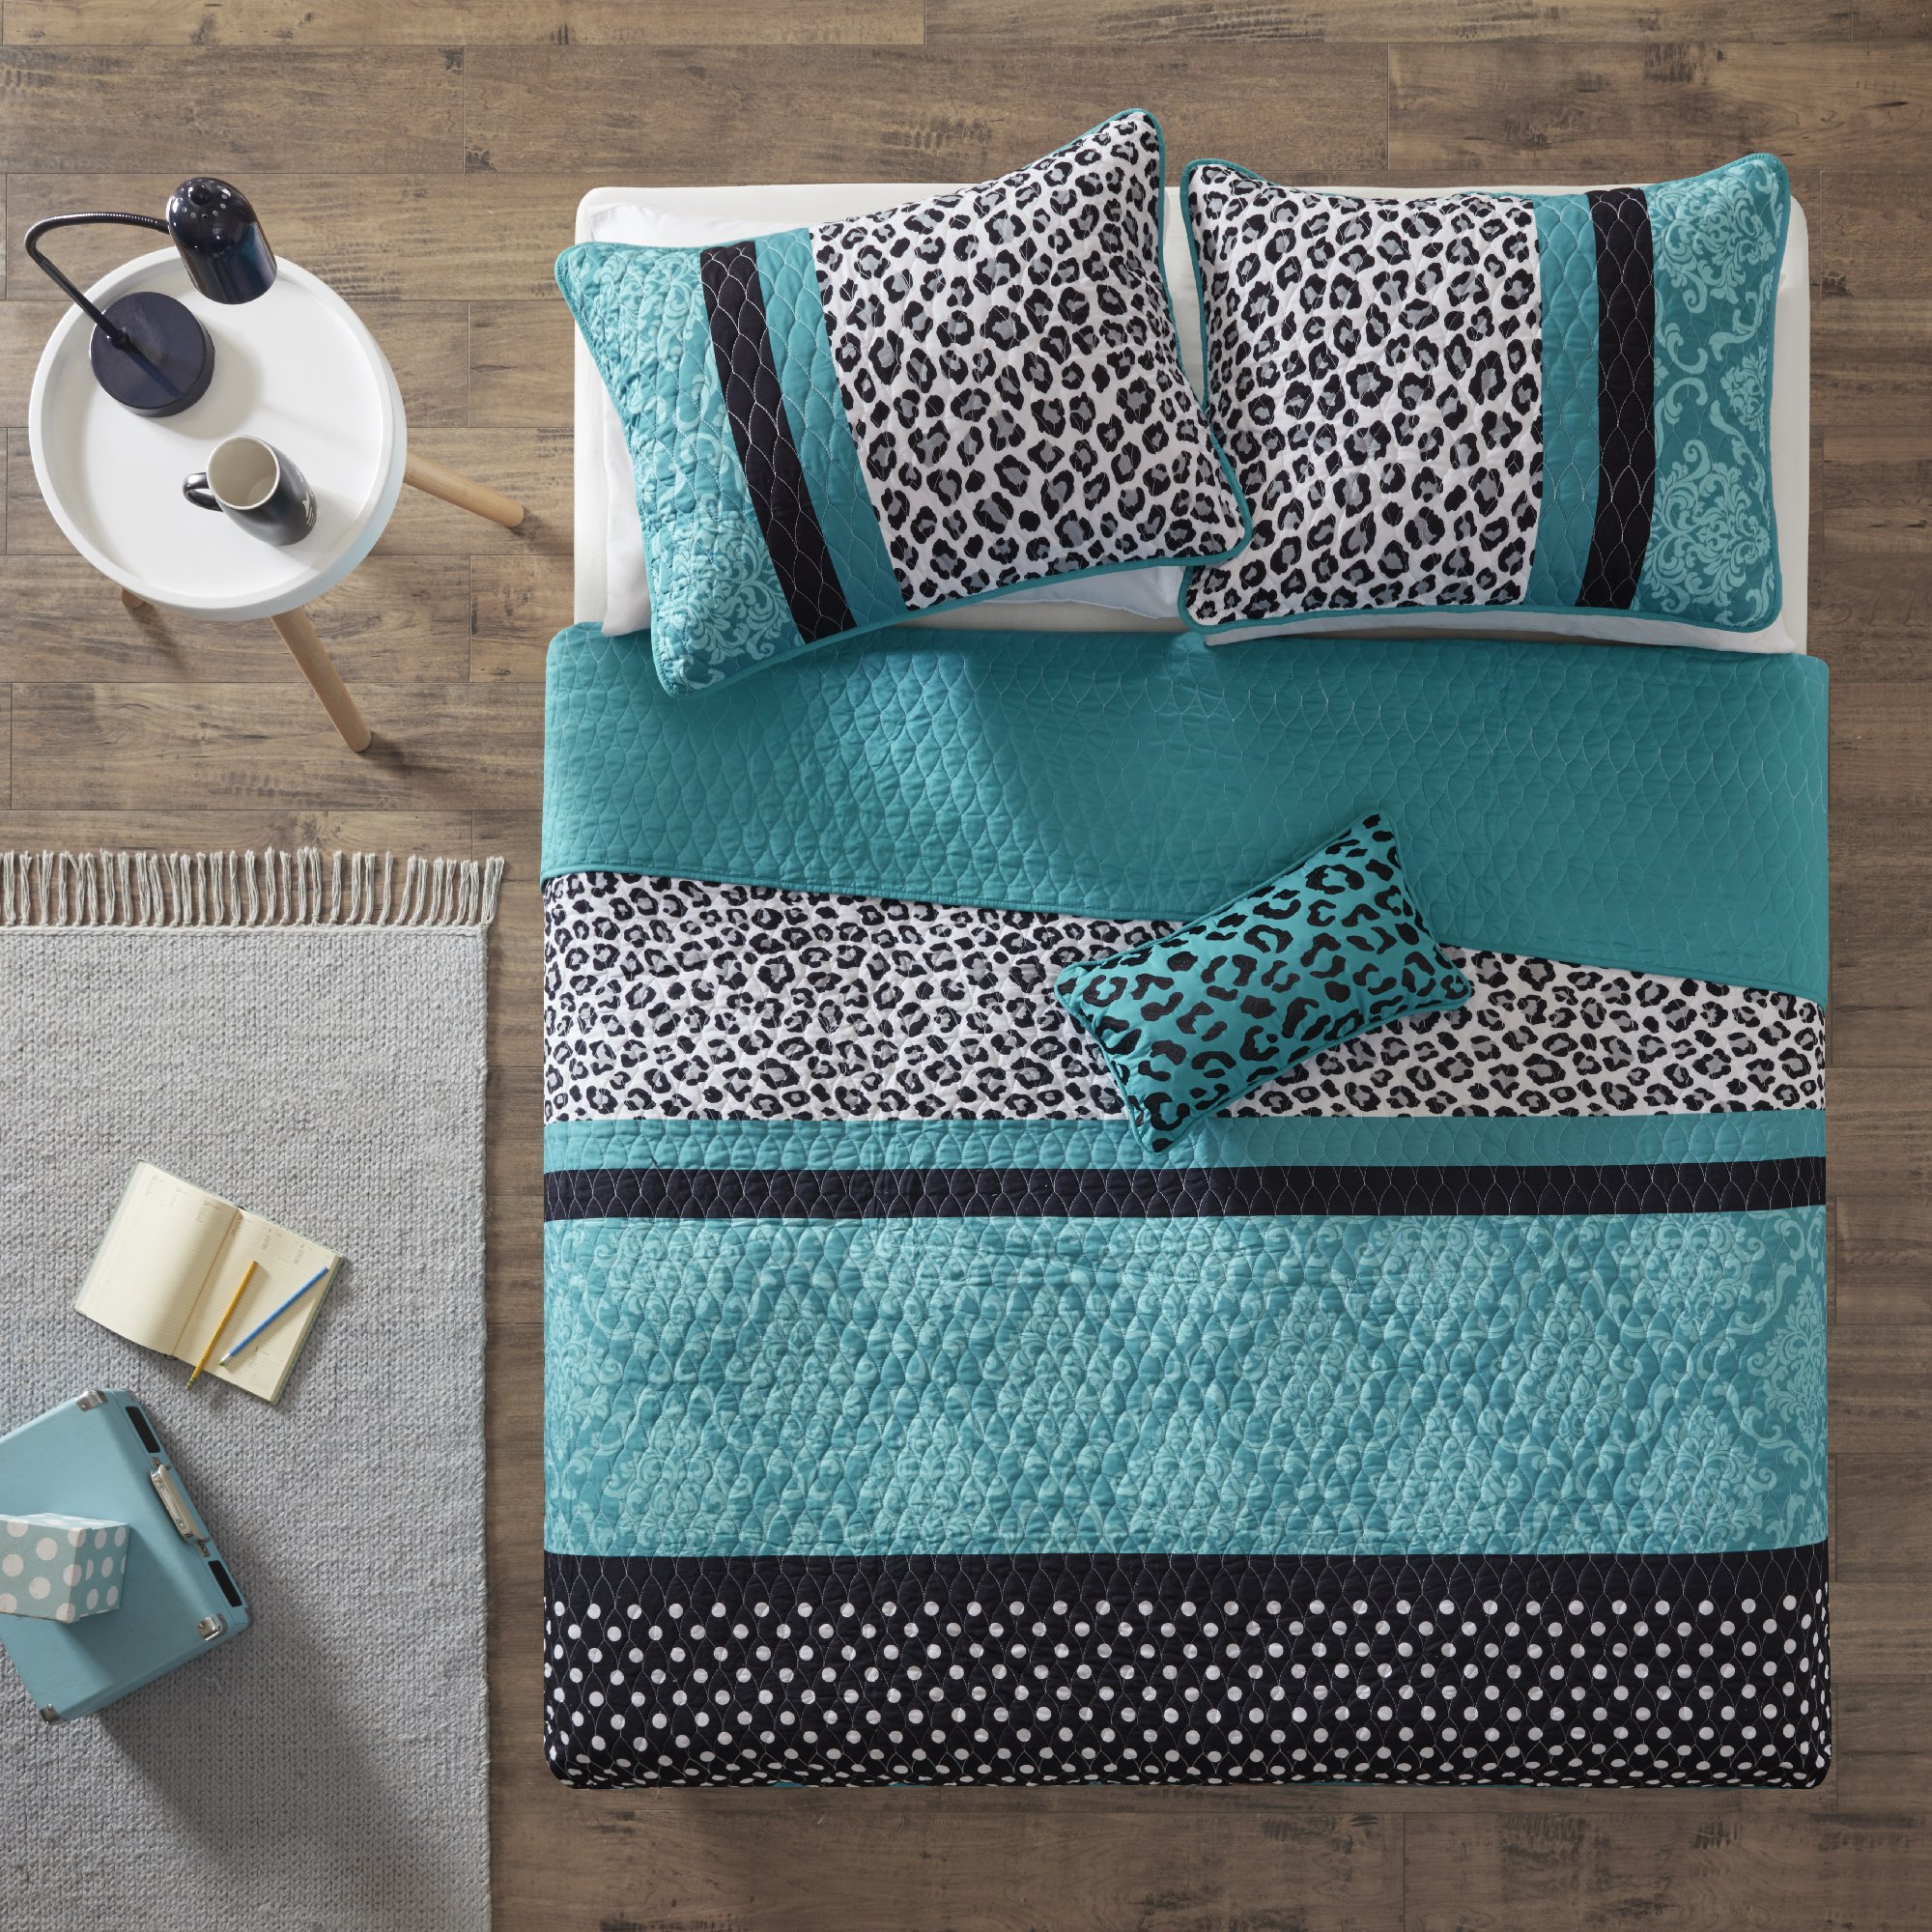 4 Piece Girls Teal Blue Leopard Print Coverlet Full Queen Set, Polka Dots Damask Bedding Animal Pattern Exotic Wild Safari Jungle Zoo Floral Pretty Colors Wilderness Cat White Dots Black, Polyester